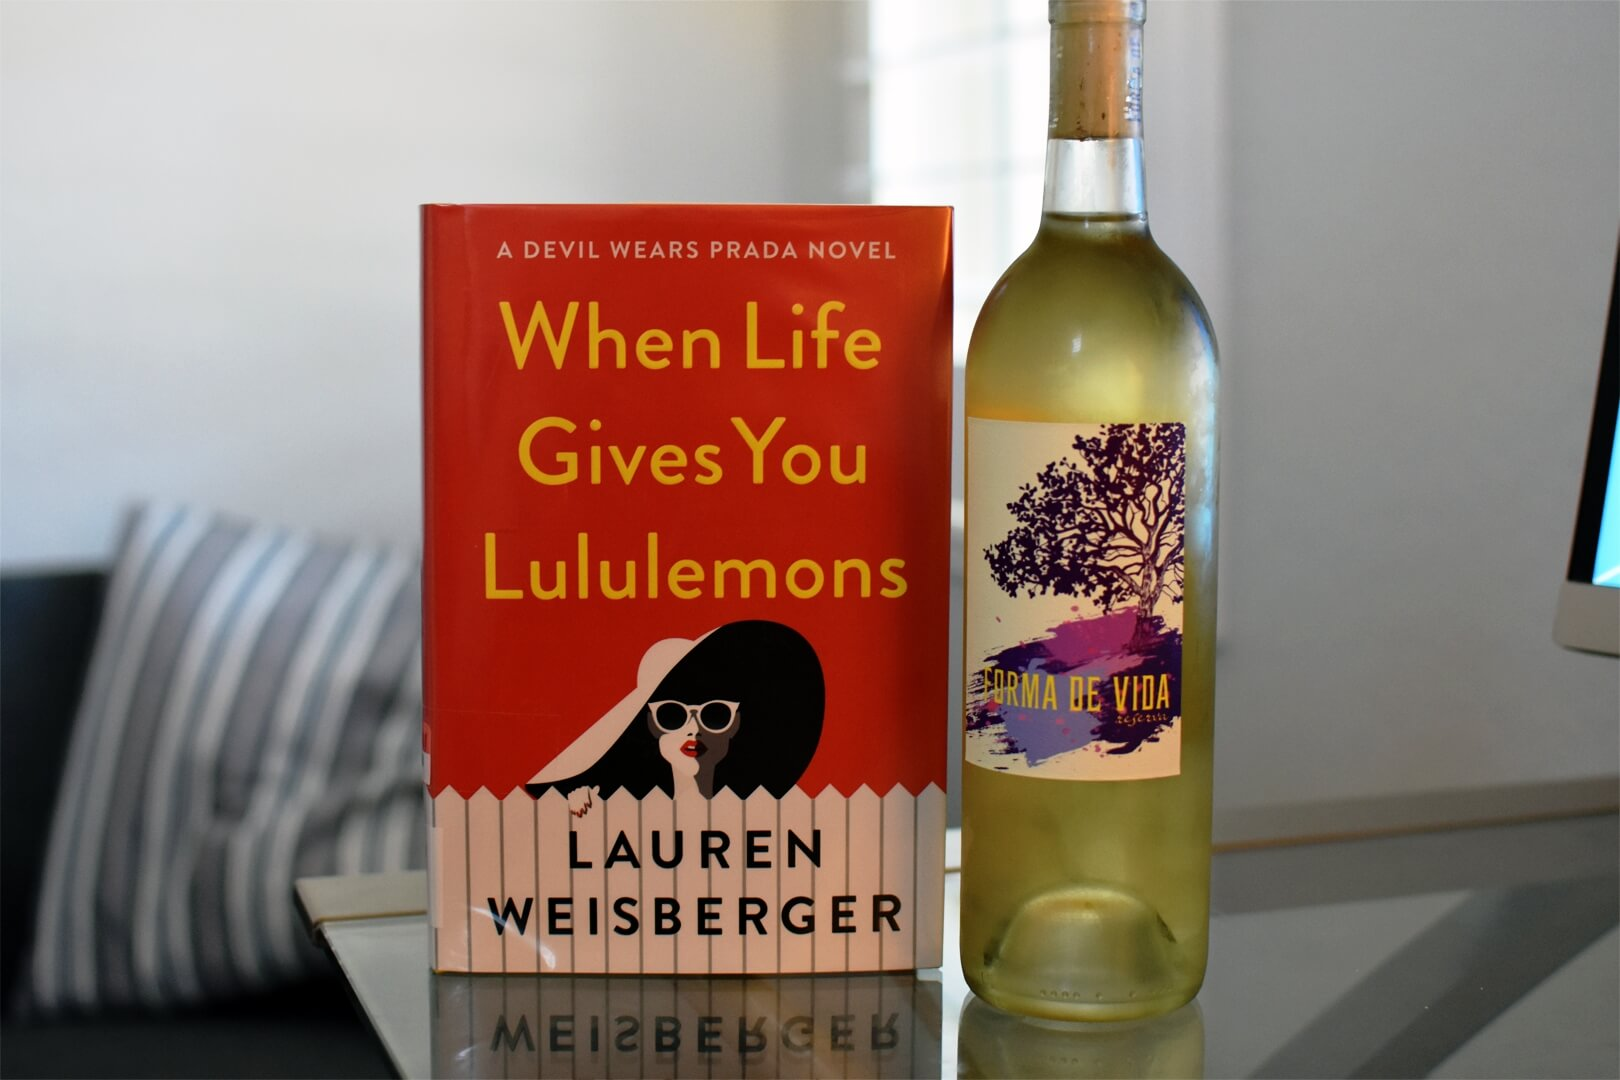 When Life Give You Lululemons Preview - Book Club Chat